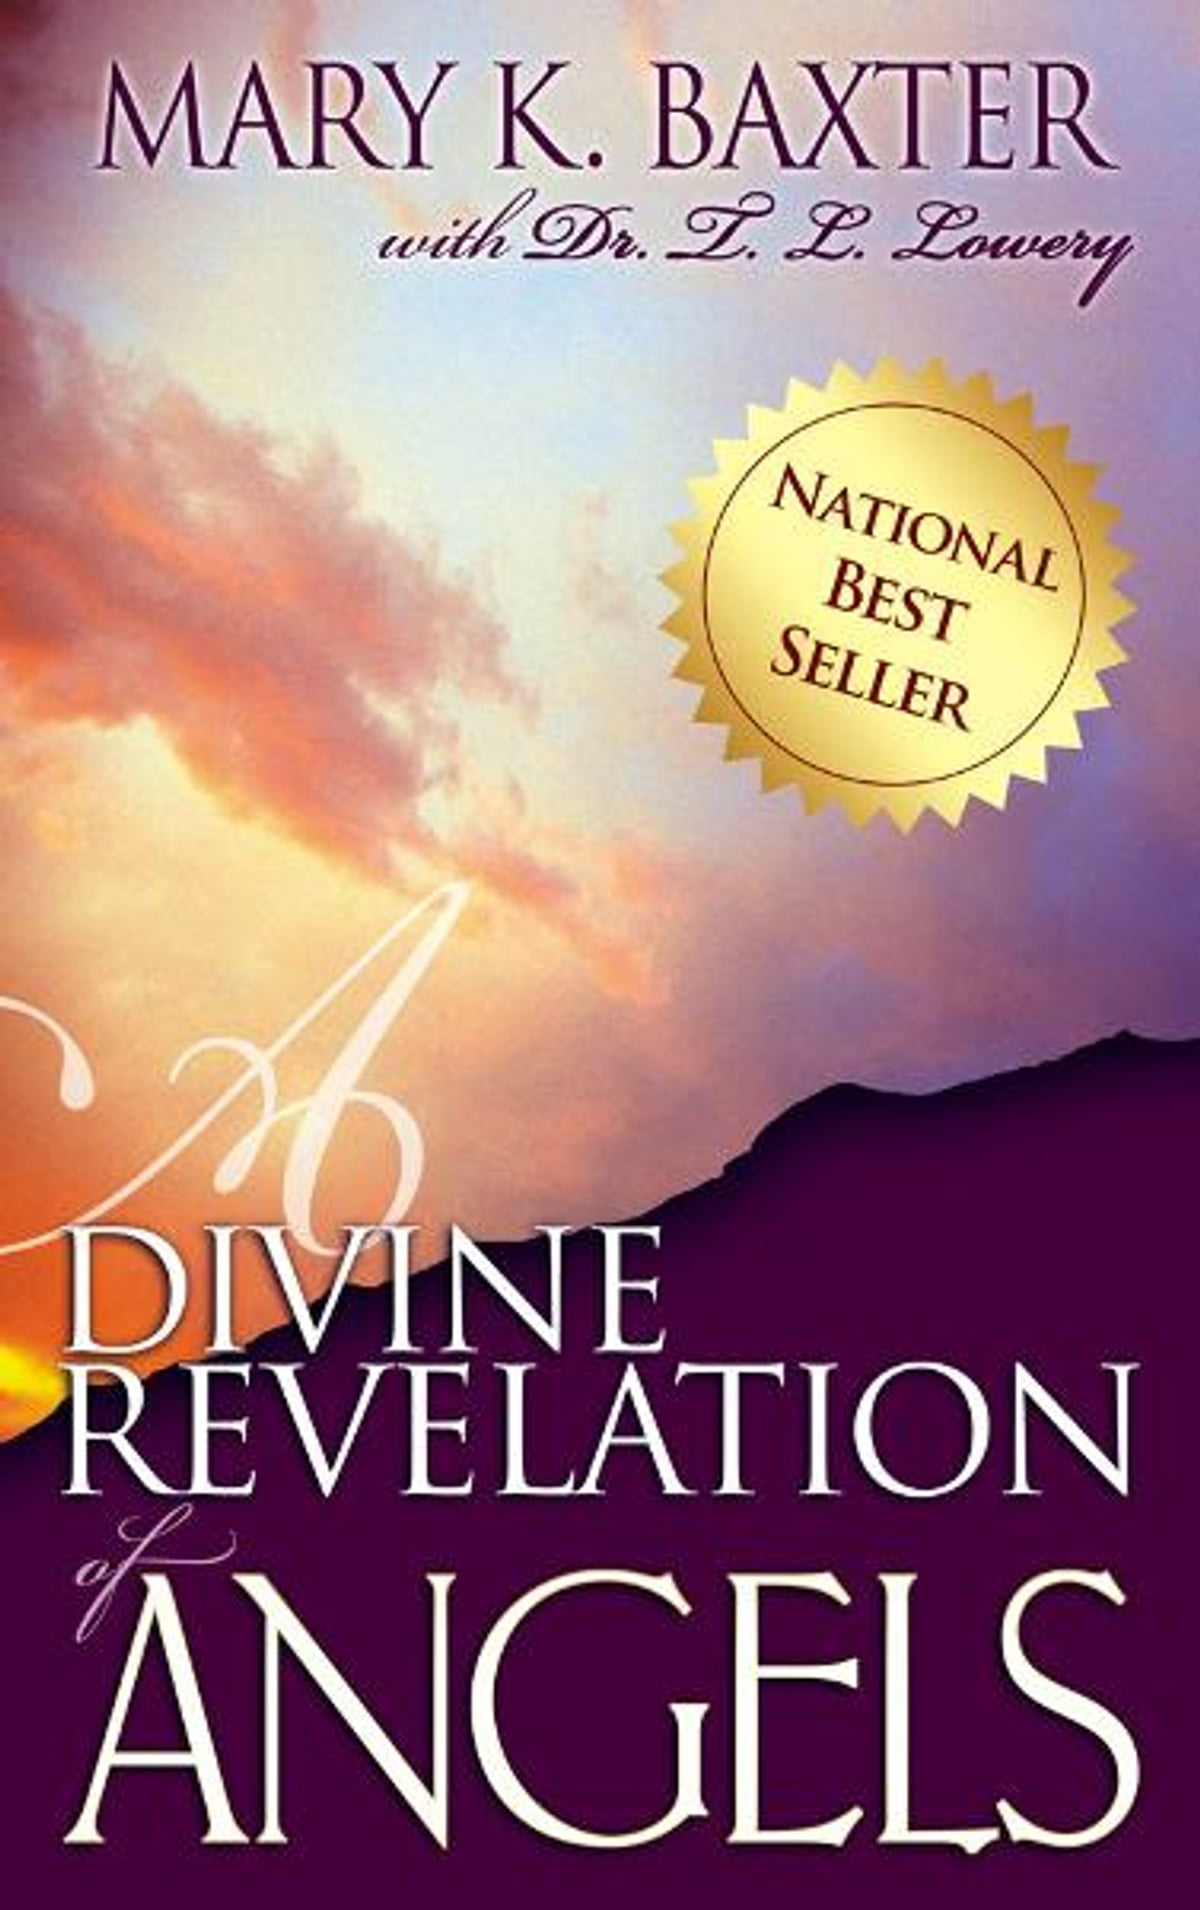 A Divine Revelation Of Angels Ebook By Mary K Baxter